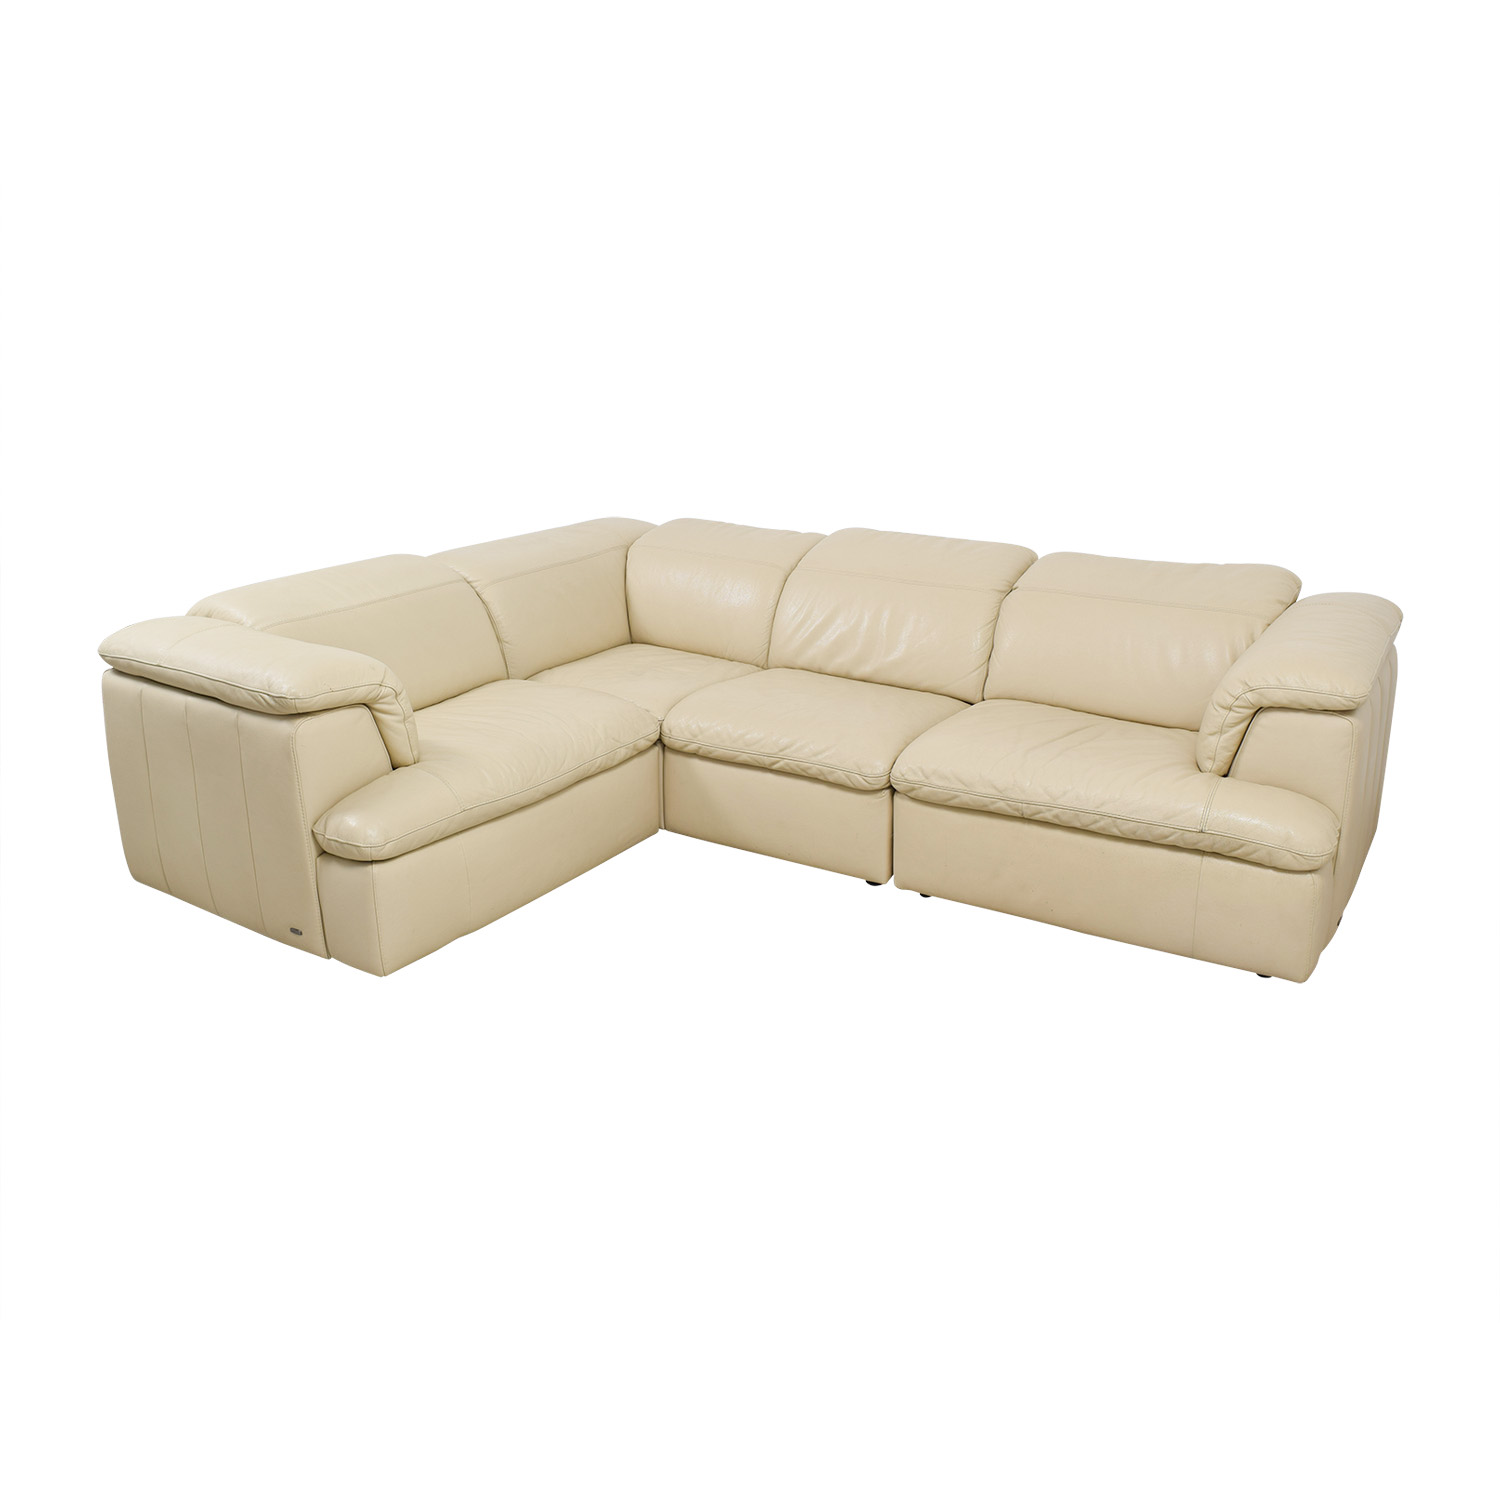 couch of grey l leather with chaise about useful shaped cheap small sectional sofa